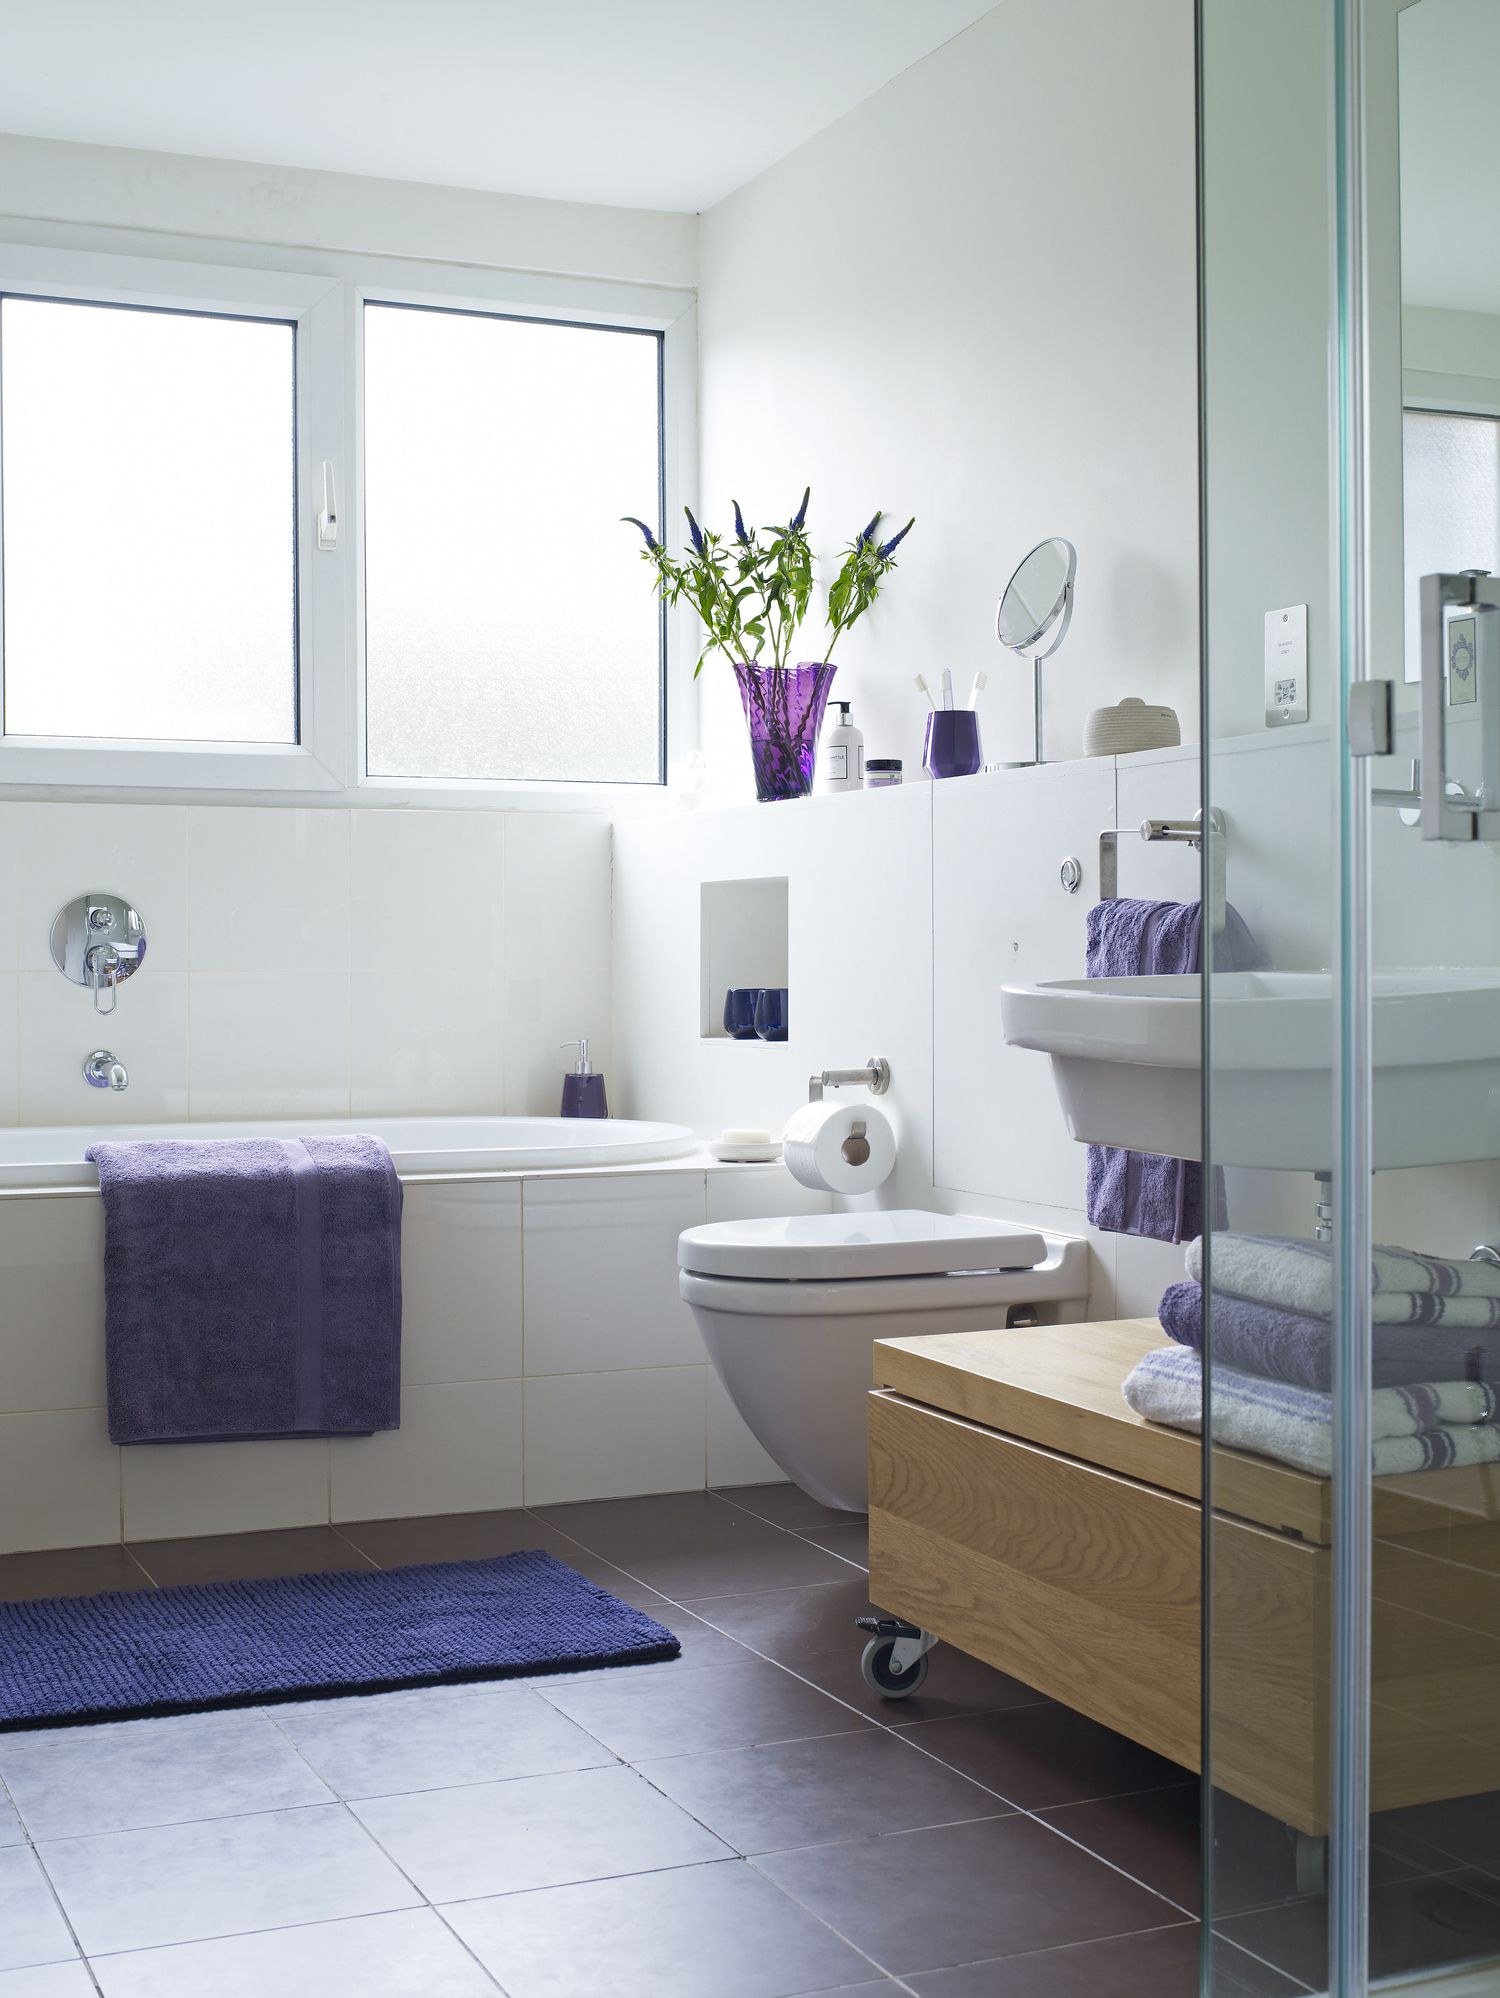 25 killer small bathroom design tips from decorators and designers - Small Bathroom Remodel Designs